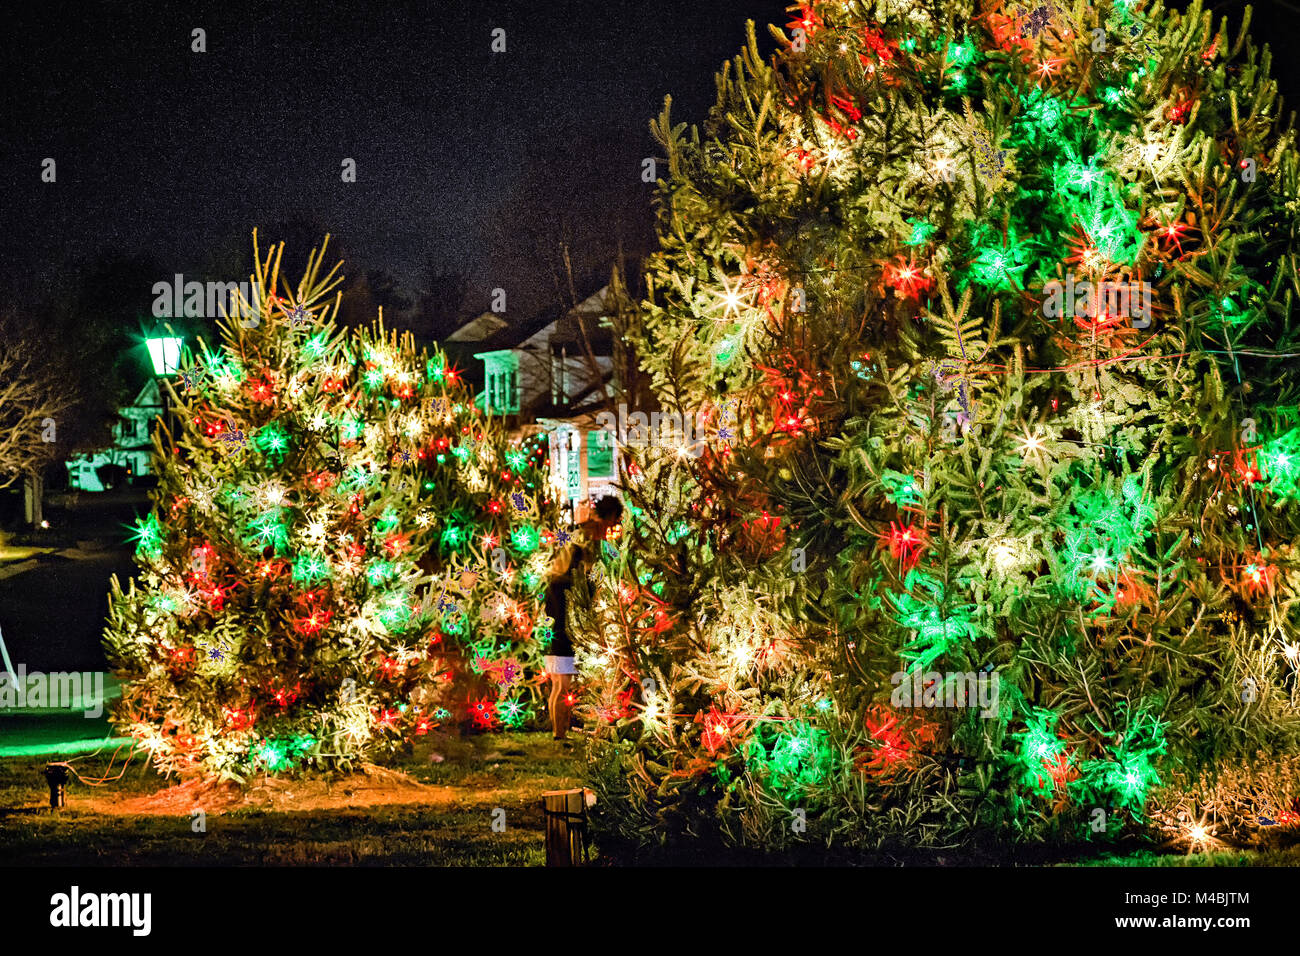 outdoor christmas decorations at christmas town usa stock image